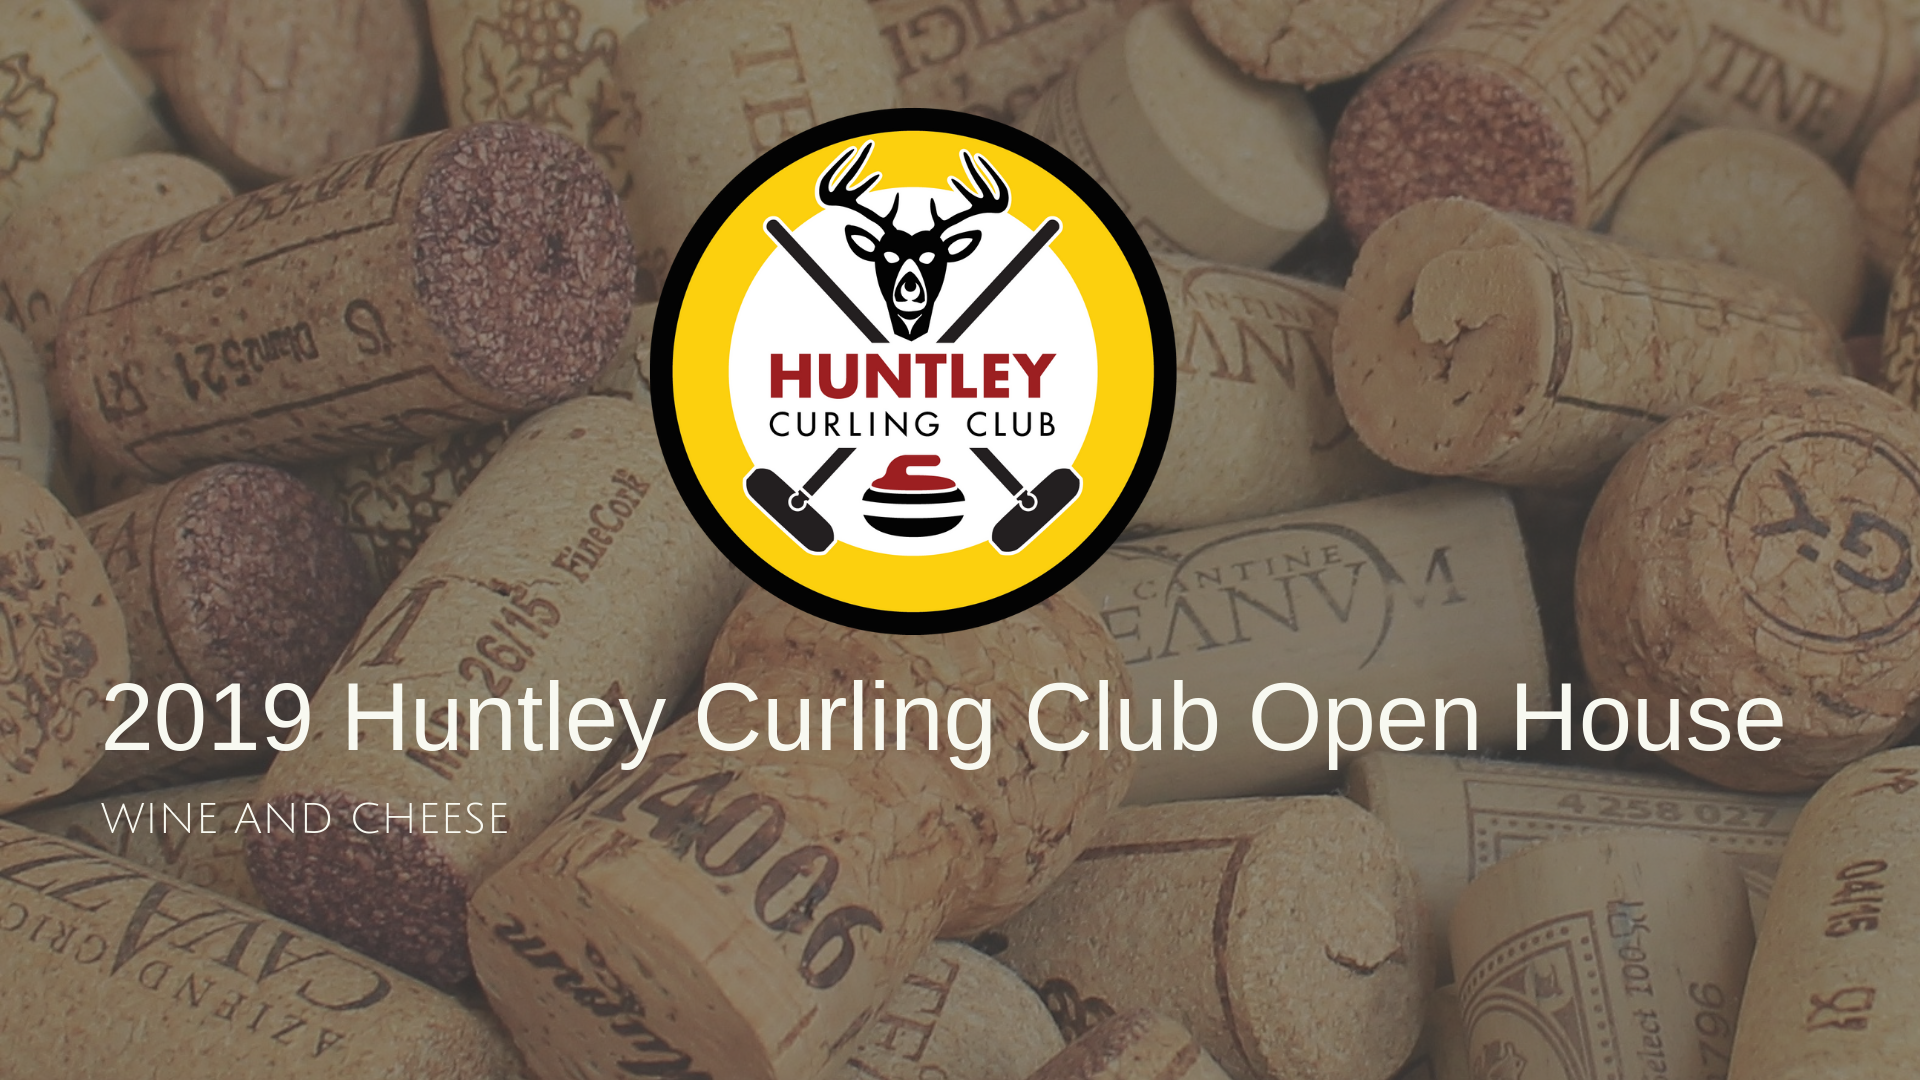 2019 Huntley Curling Club Open House